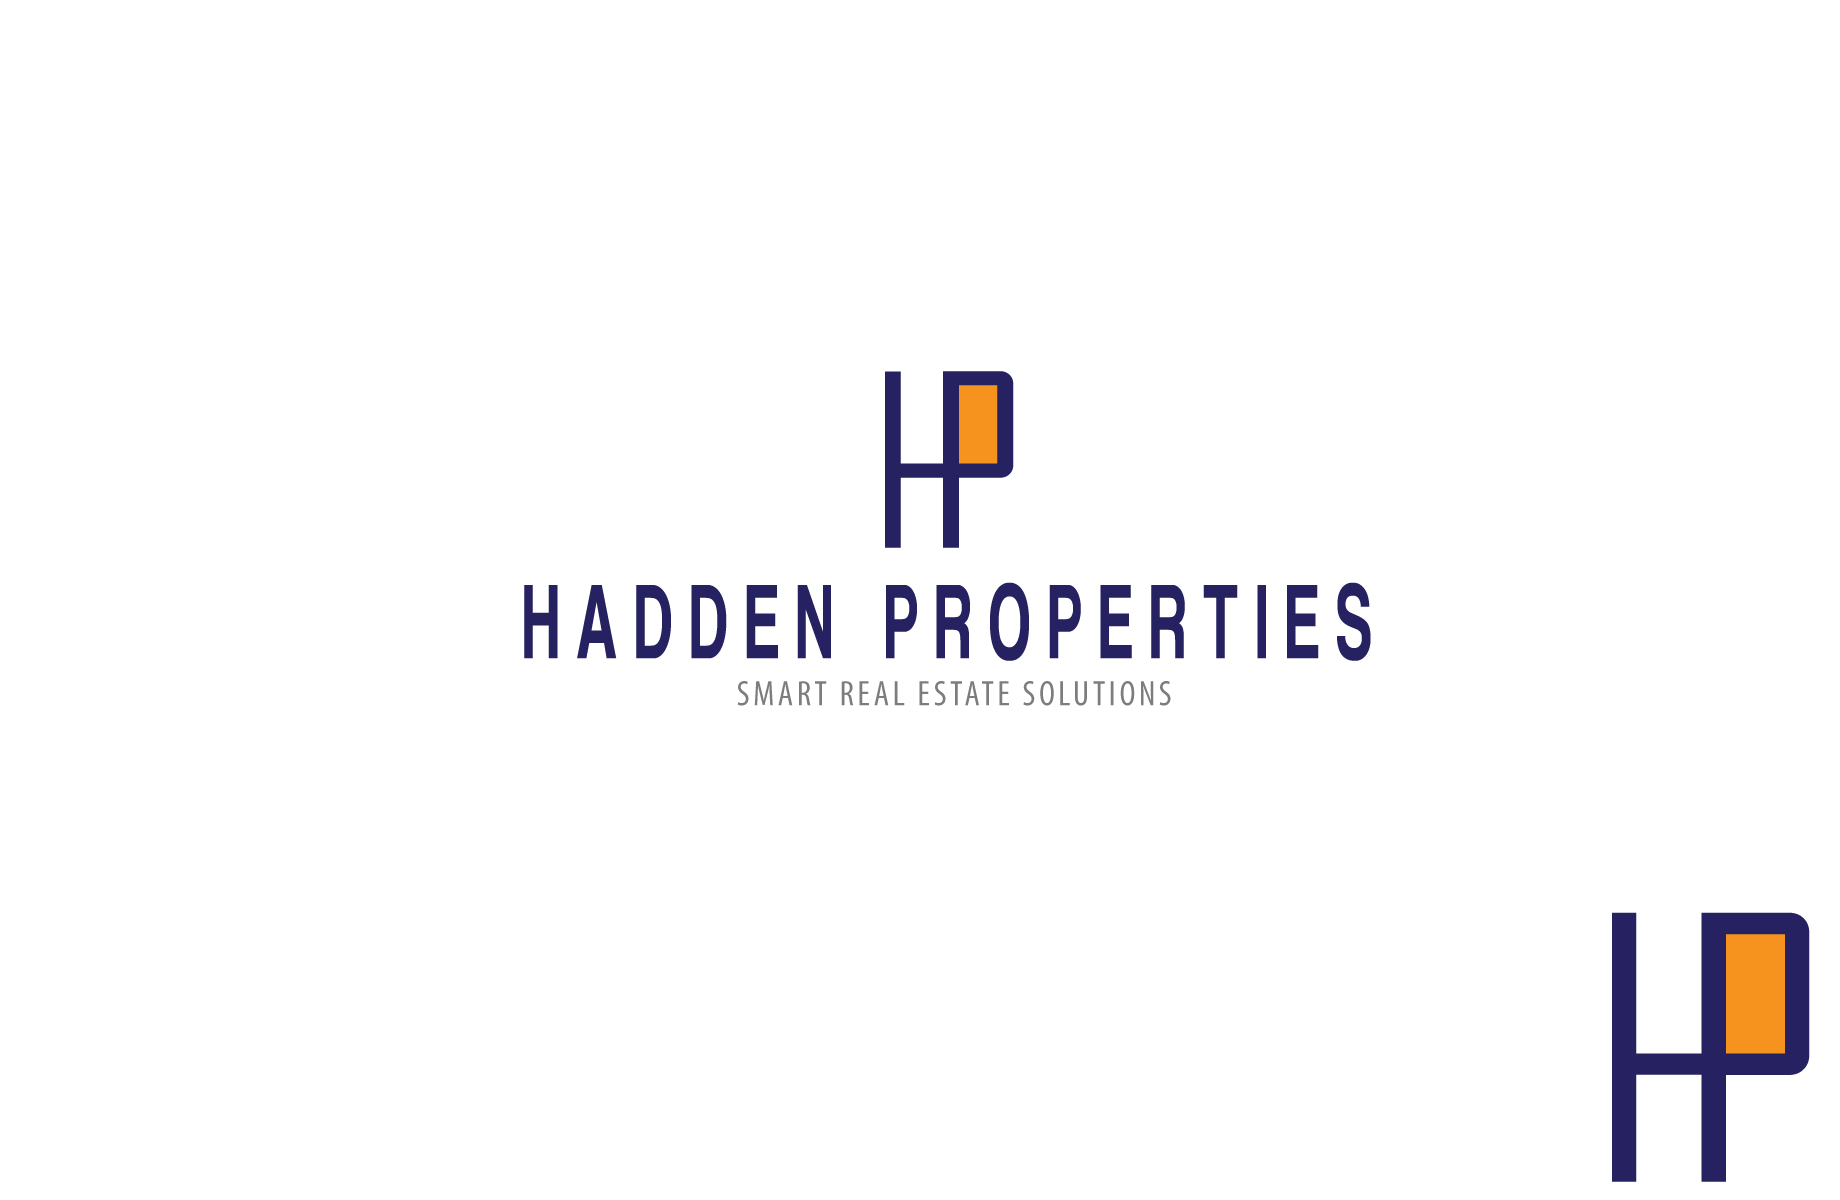 Logo Design by Jan Chua - Entry No. 51 in the Logo Design Contest Artistic Logo Design for Hadden Properties.